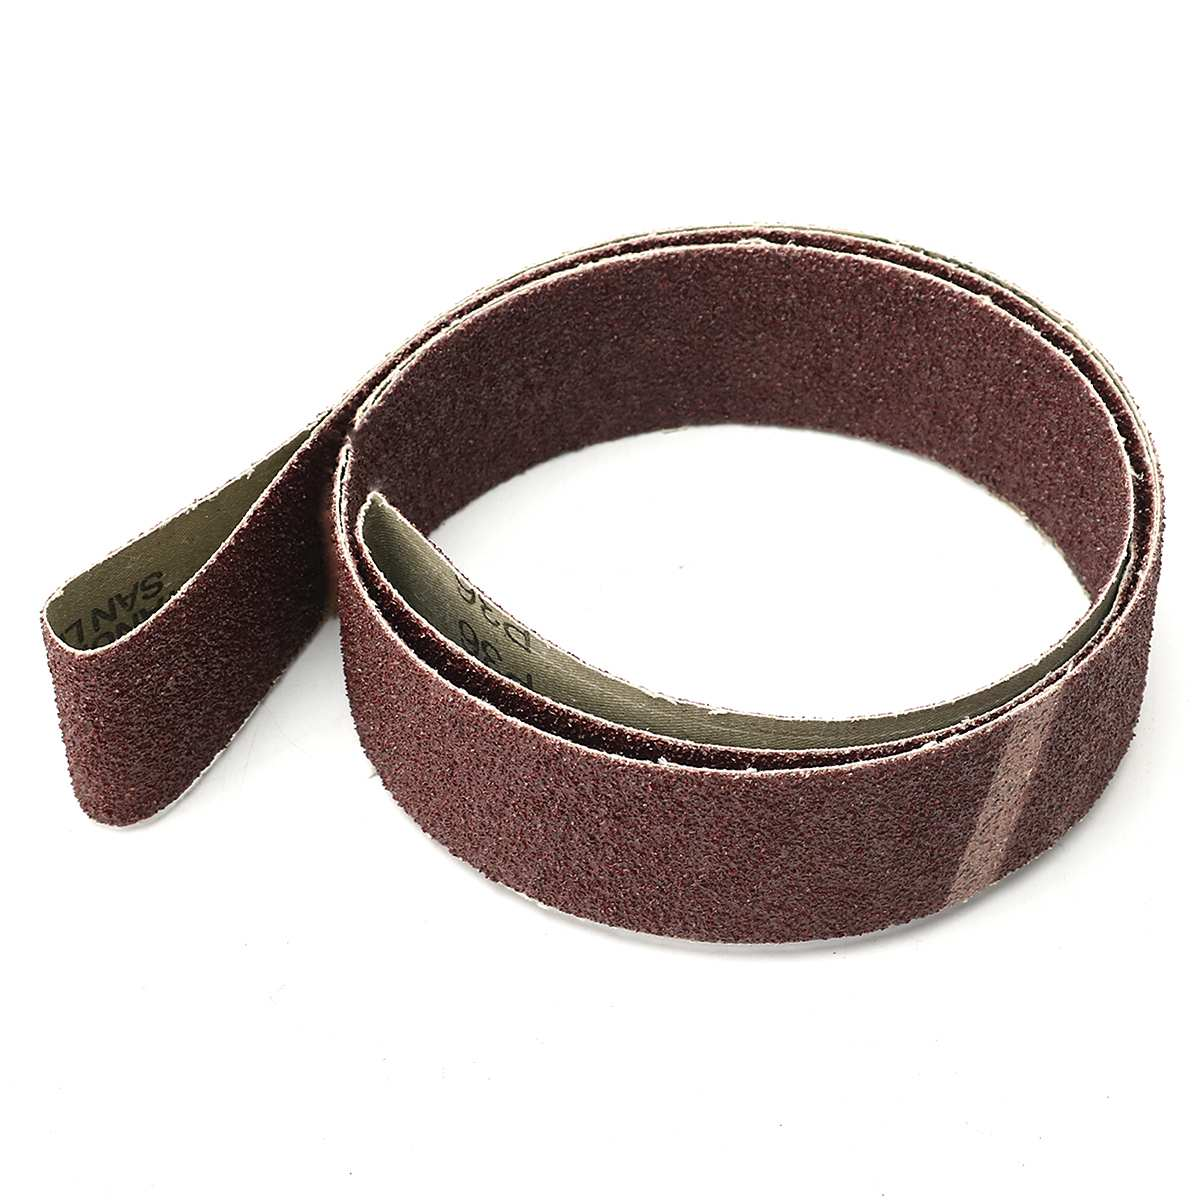 1pcs 36 Grit Sanding Belt Polishing Belt 72 Inch Aluminum Oxide For Grinding Polishing Use Abrasives Sanding Belt Disc